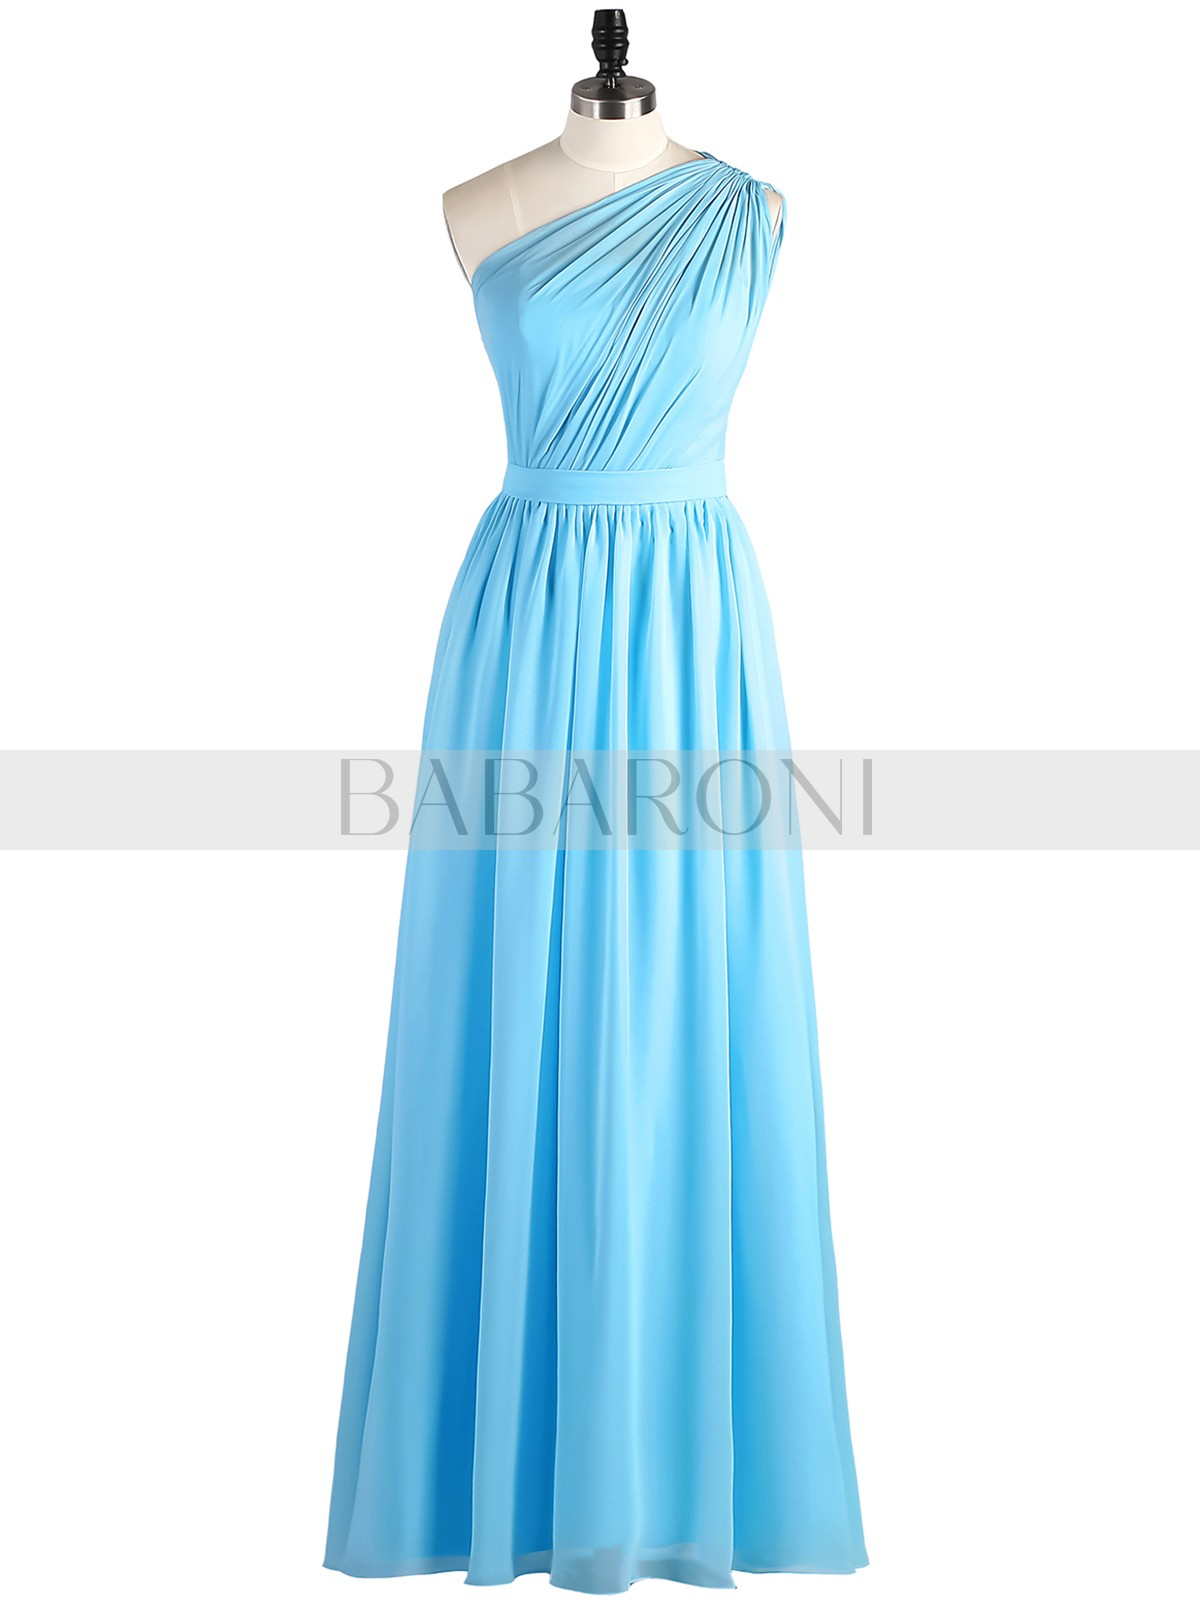 Pool Babaroni Maggie Bridesmaid Dresses | Babaroni